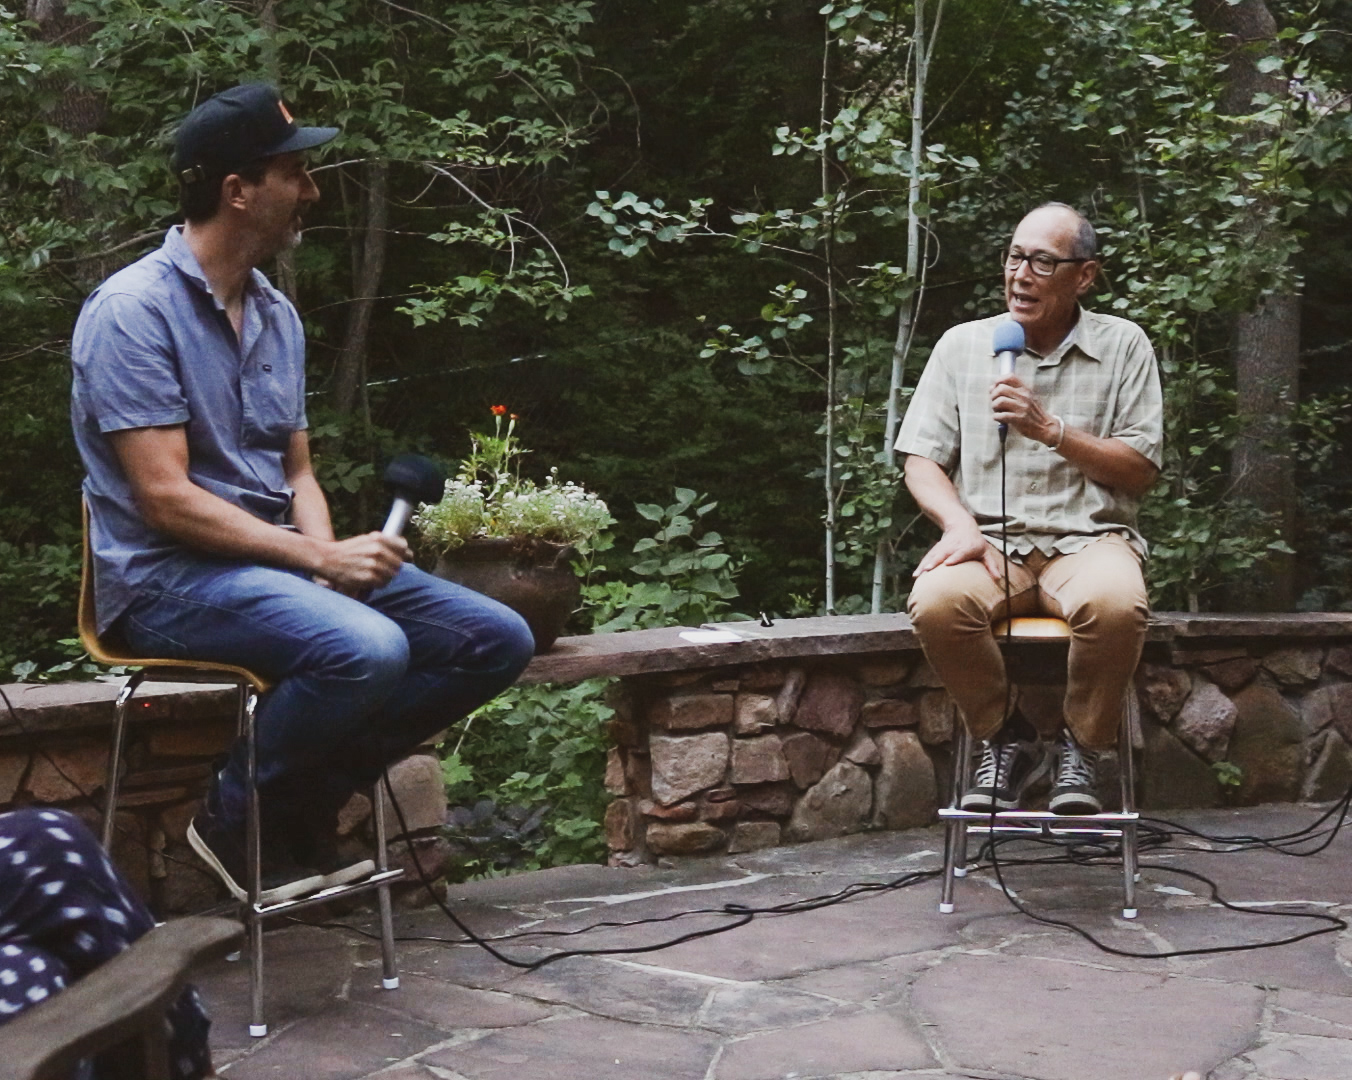 Live podcast with Scarpa CEO and Black Diamond Cofounder Kim Miller - As part of the innaugral ShredX Soiree series in Boulder, CO - I had the pleasure of sitting down with Kim Miller to hear his stories of being a dirtbag climber, working at Chouinard Equipment in the early days, and his philosophy on running one of the industry's leading companies.